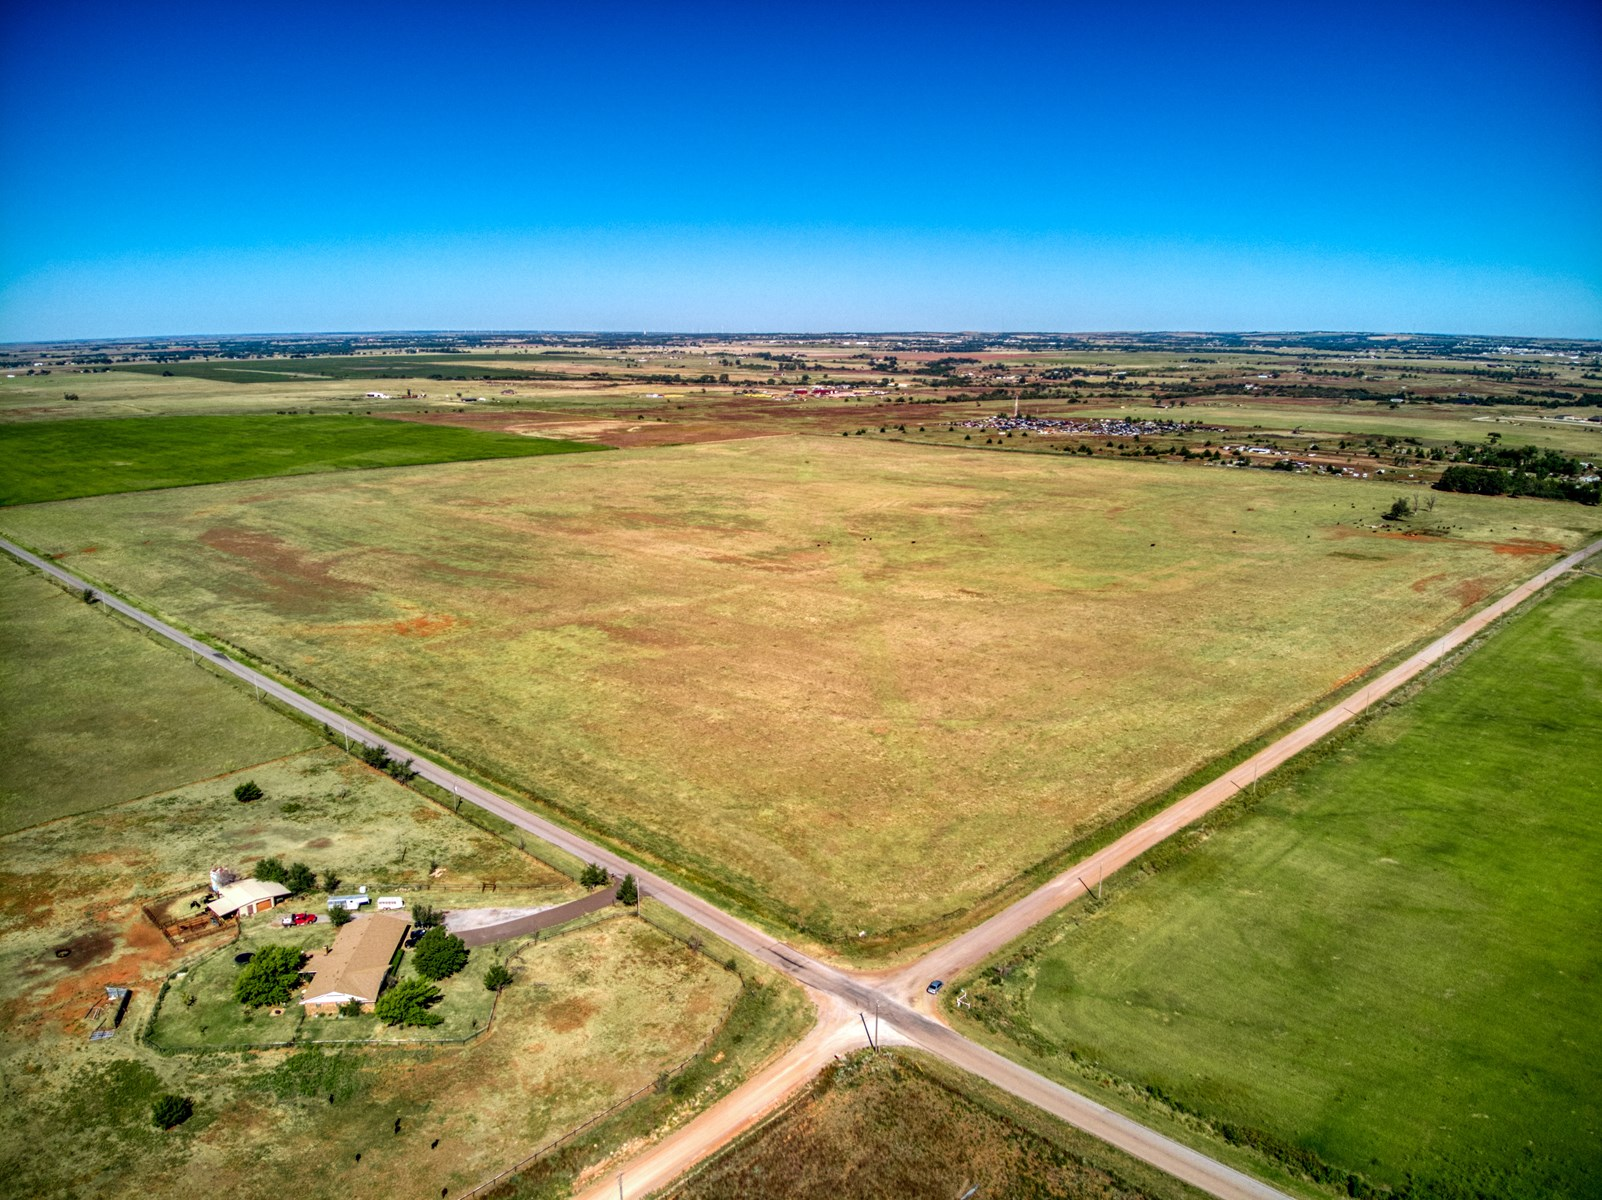 160 ACRES OF LAND FOR SALE ELK CITY, OKLAHOMA